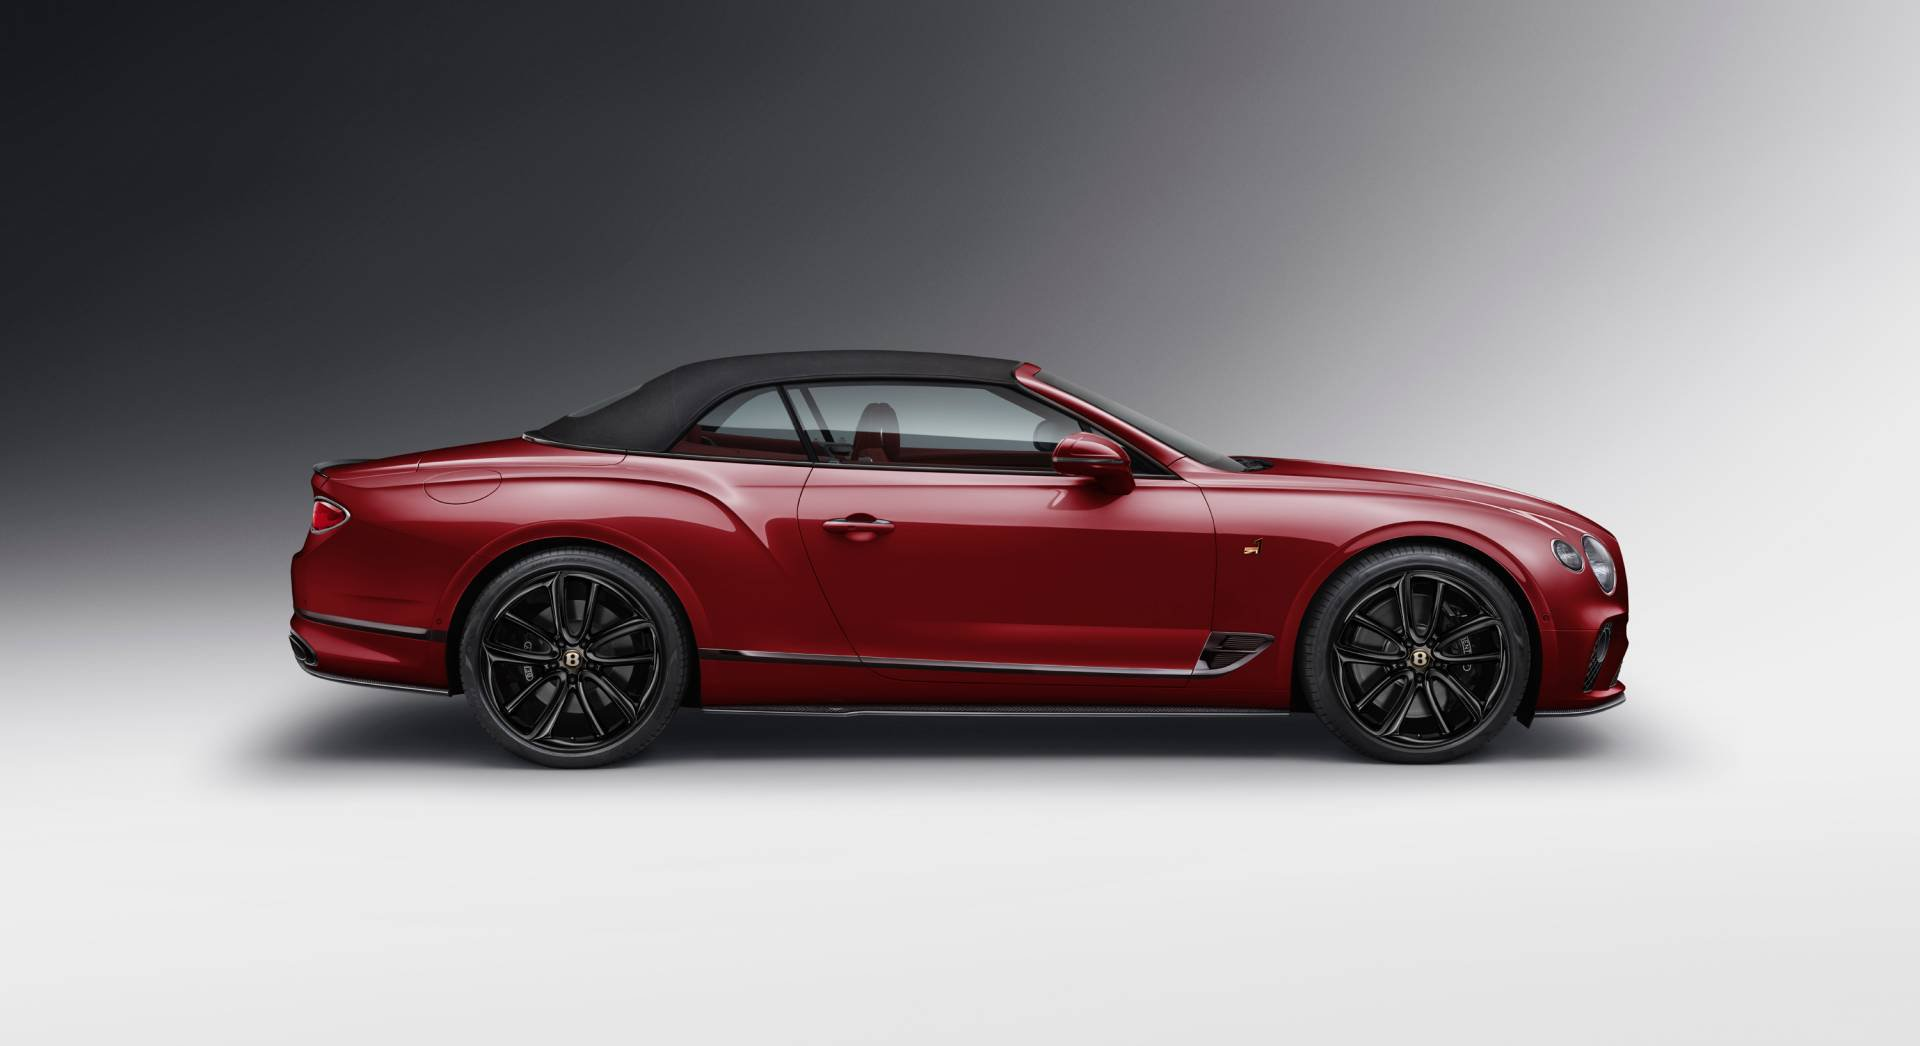 Bentley_Continental_GT_Convertible_Number_1_Edition_by_Mulliner_0003